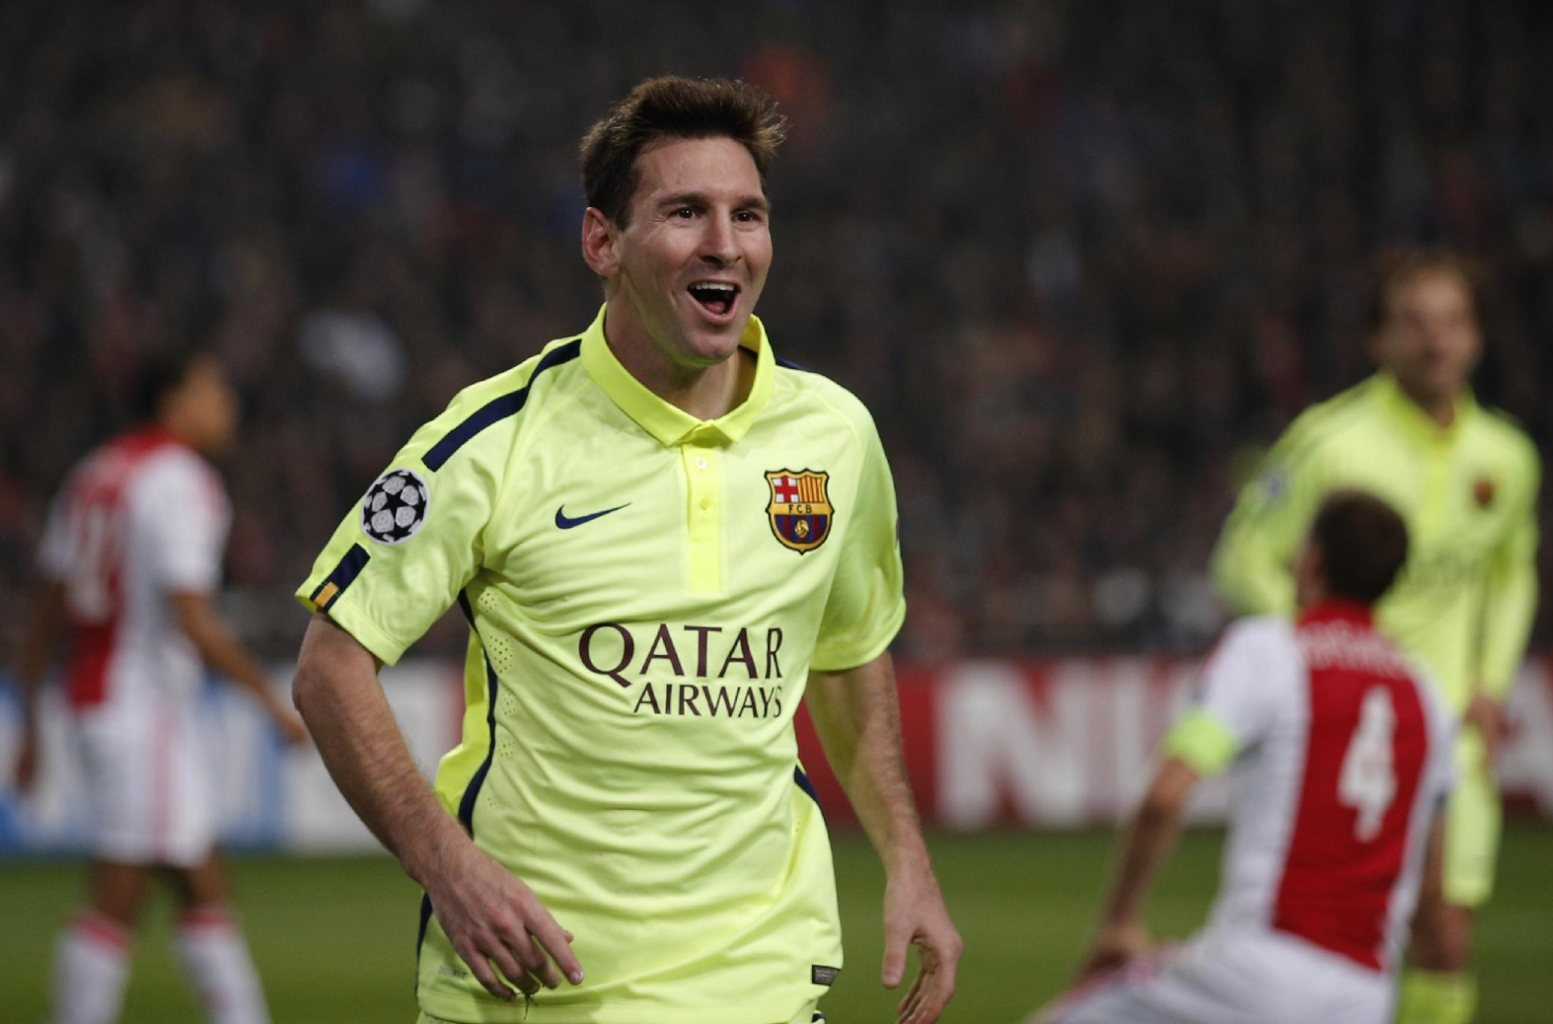 Lionel Messi celebrates scoring a brace for Barcelona, in the UEFA Champions League